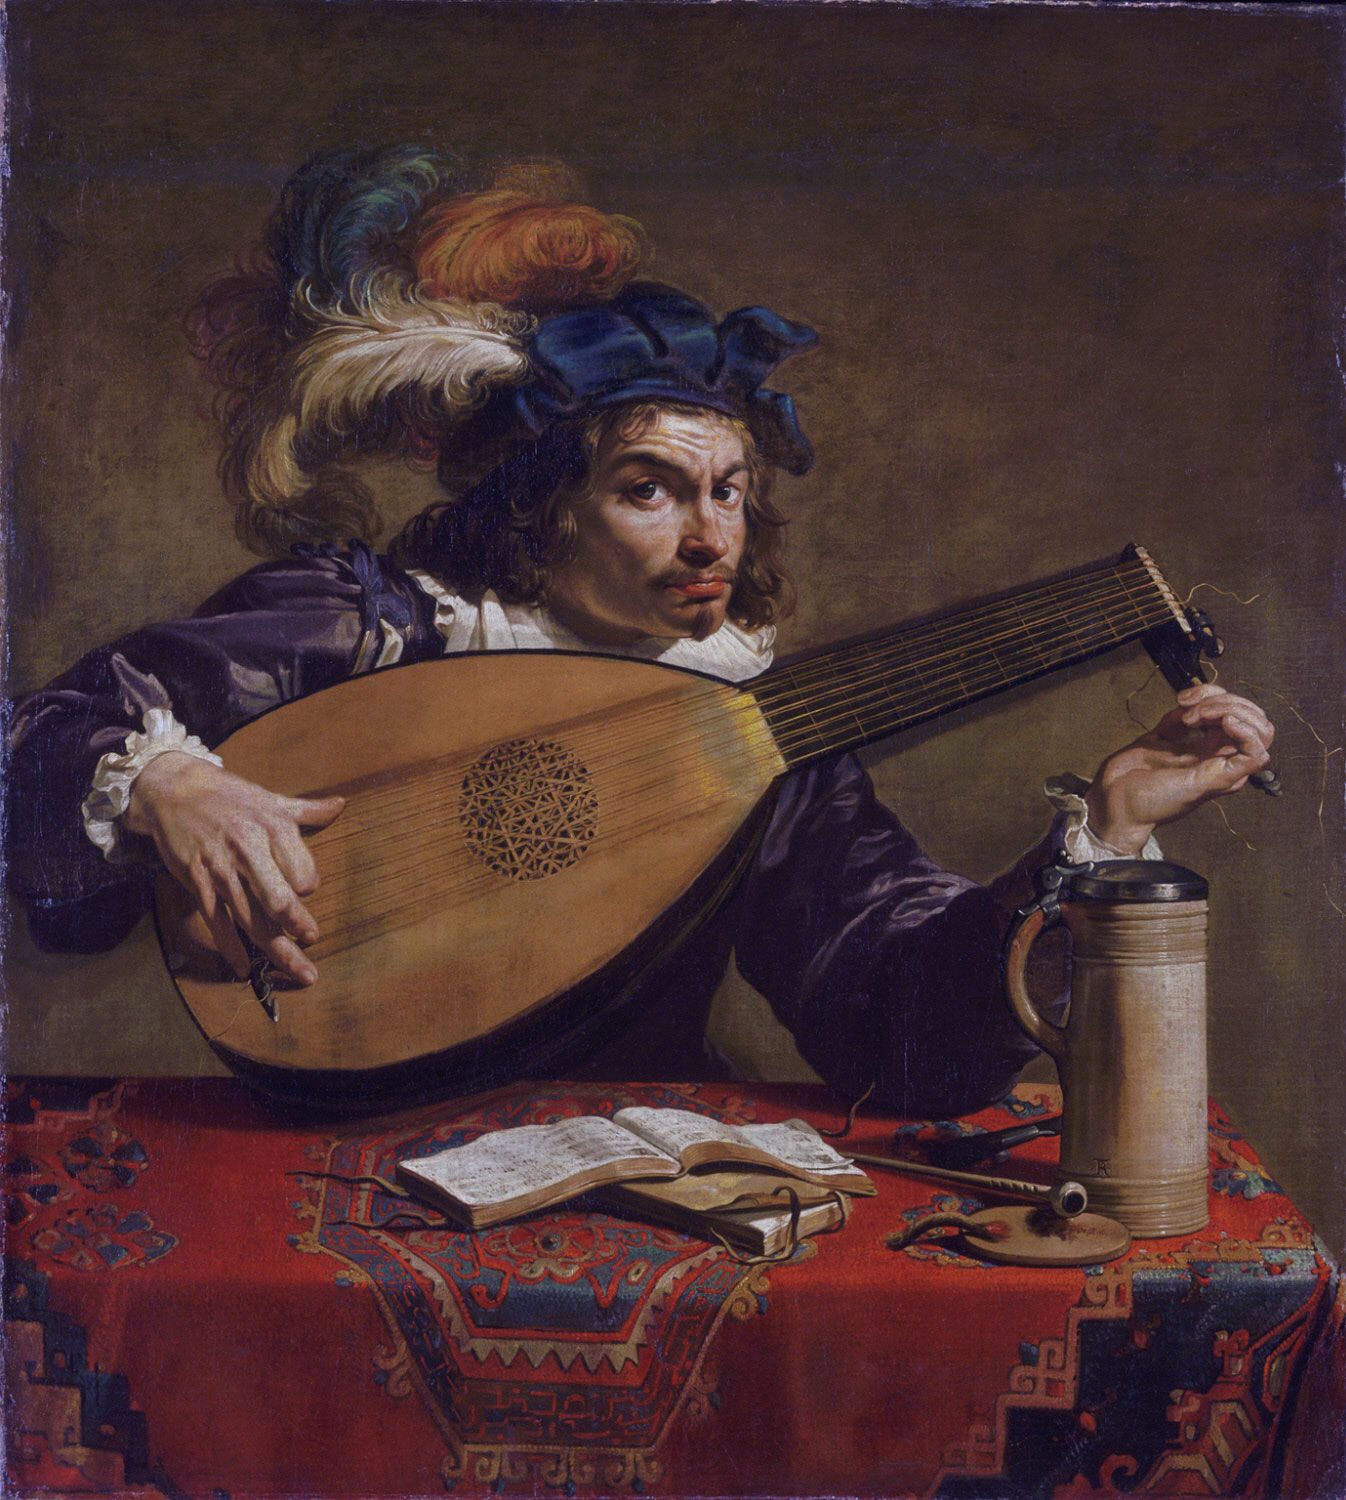 Rombouts lute player